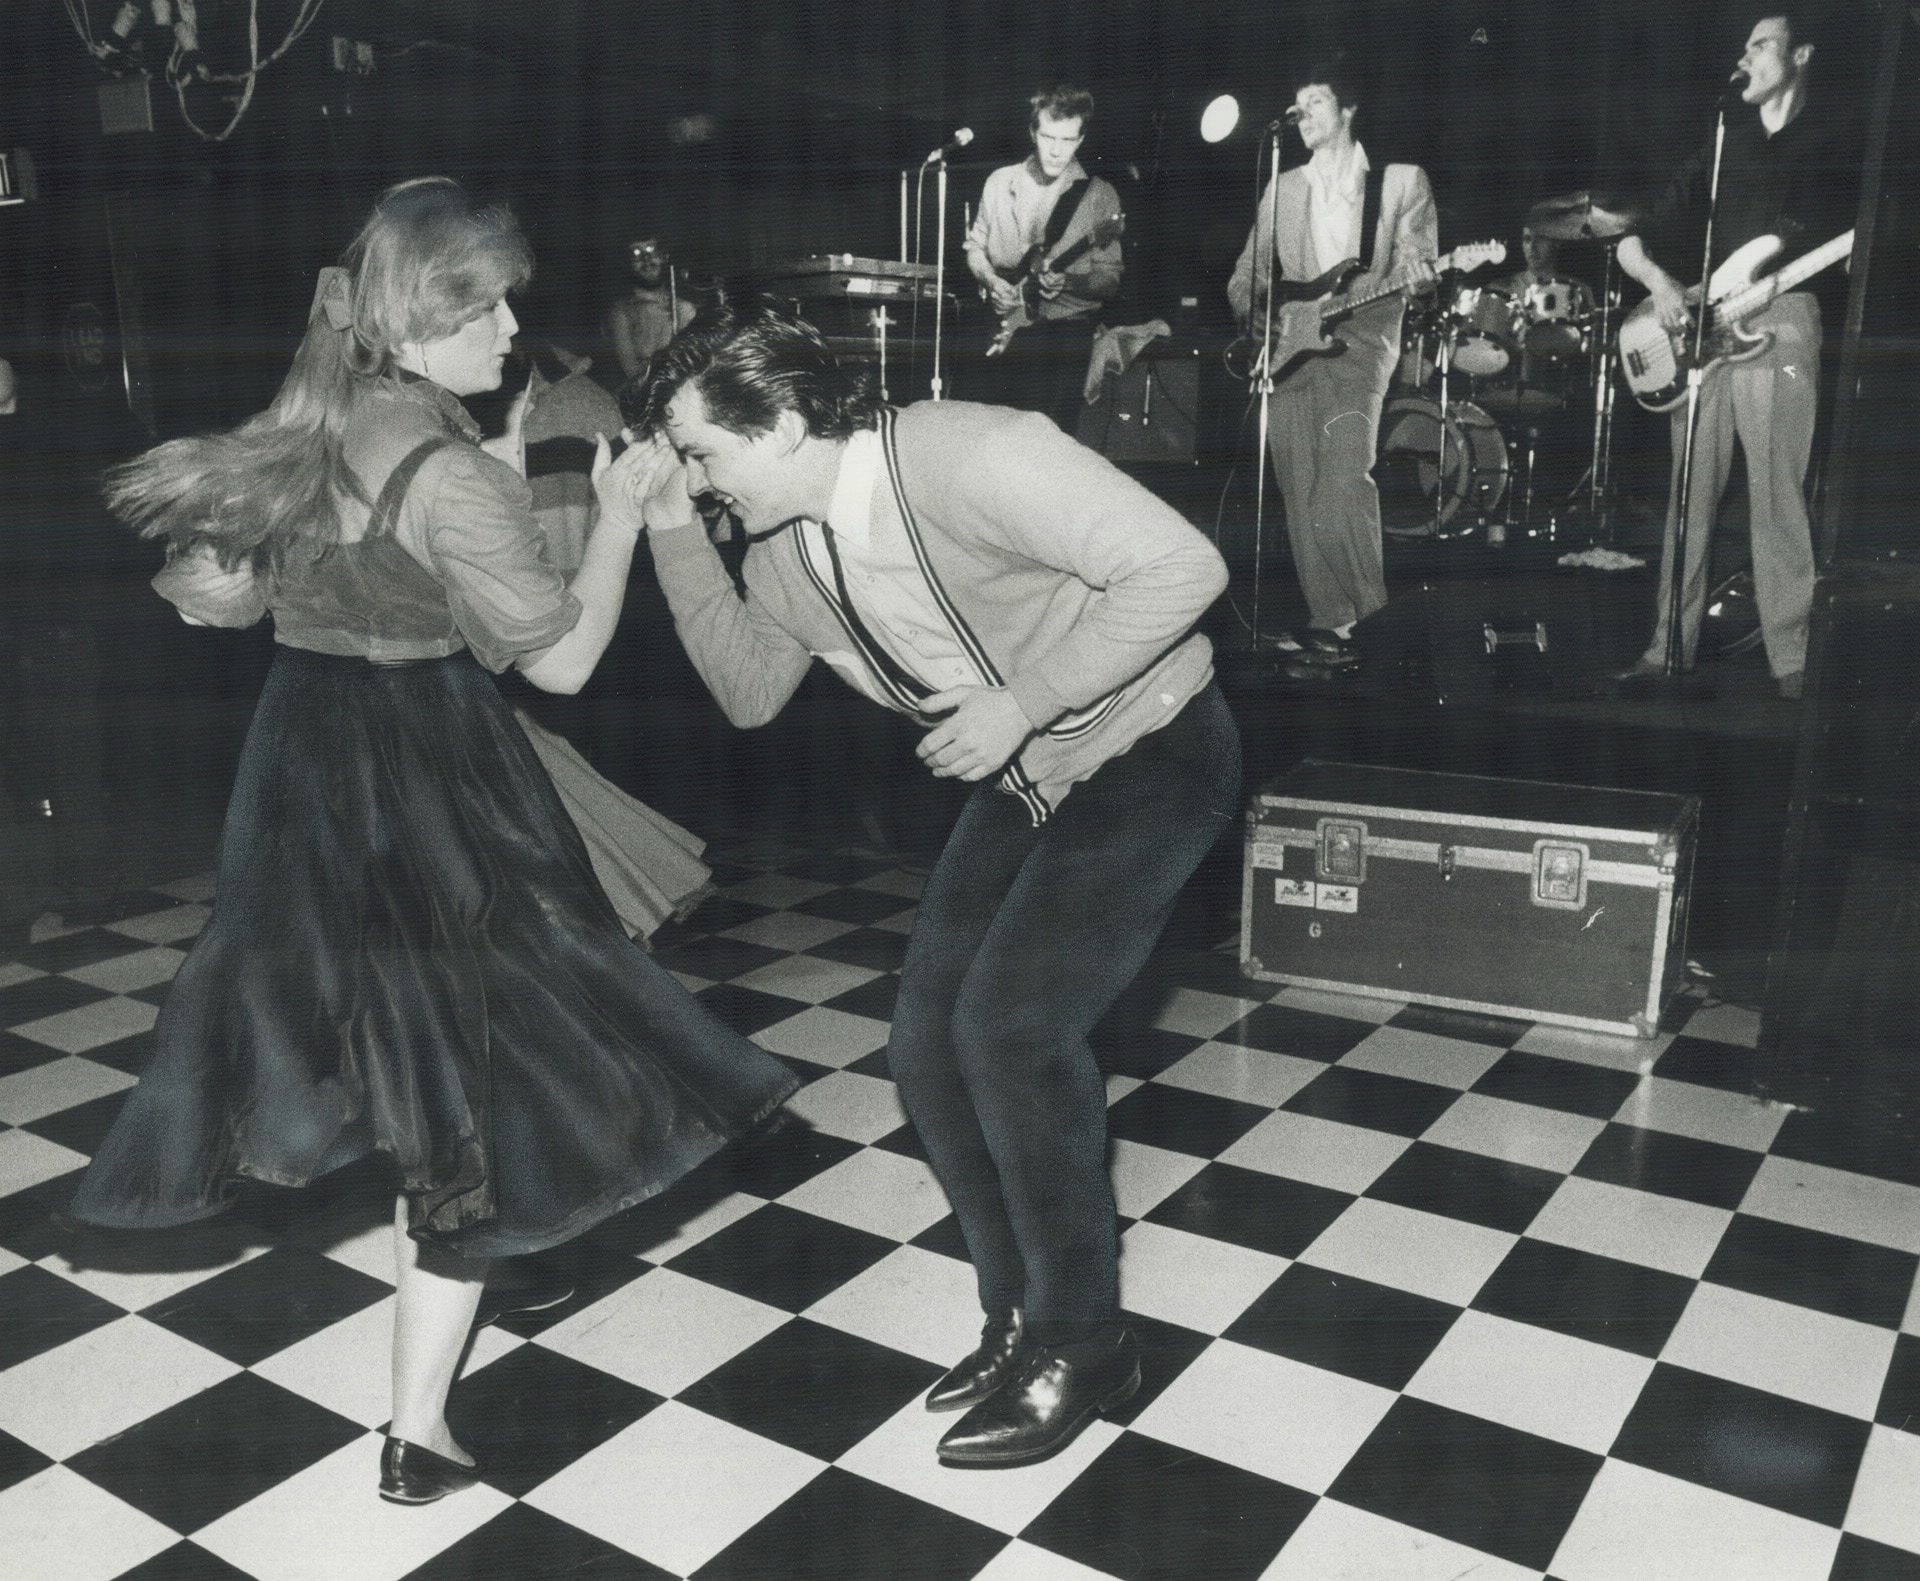 A couple dance on a checkboard floor while a band plays on stage. They are wearing 1950s style clothing, including a poodle skirt and cardigan.